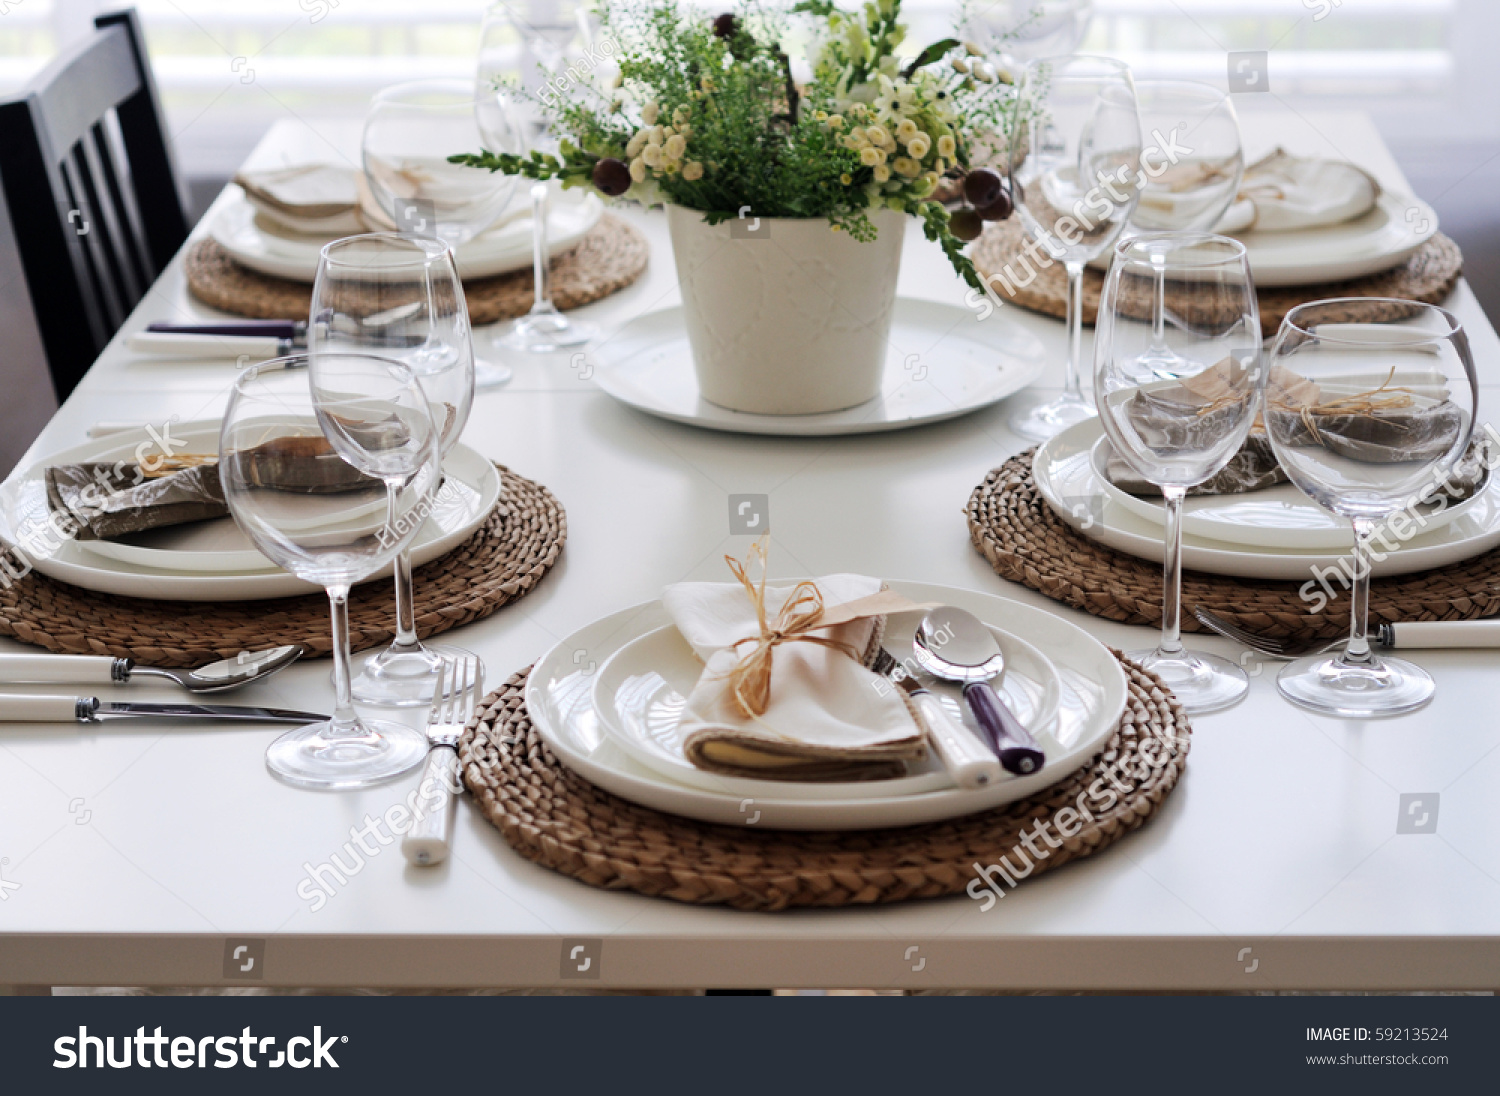 Summer Table Setting For Lunch Stock Photo 59213524 : Shutterstock